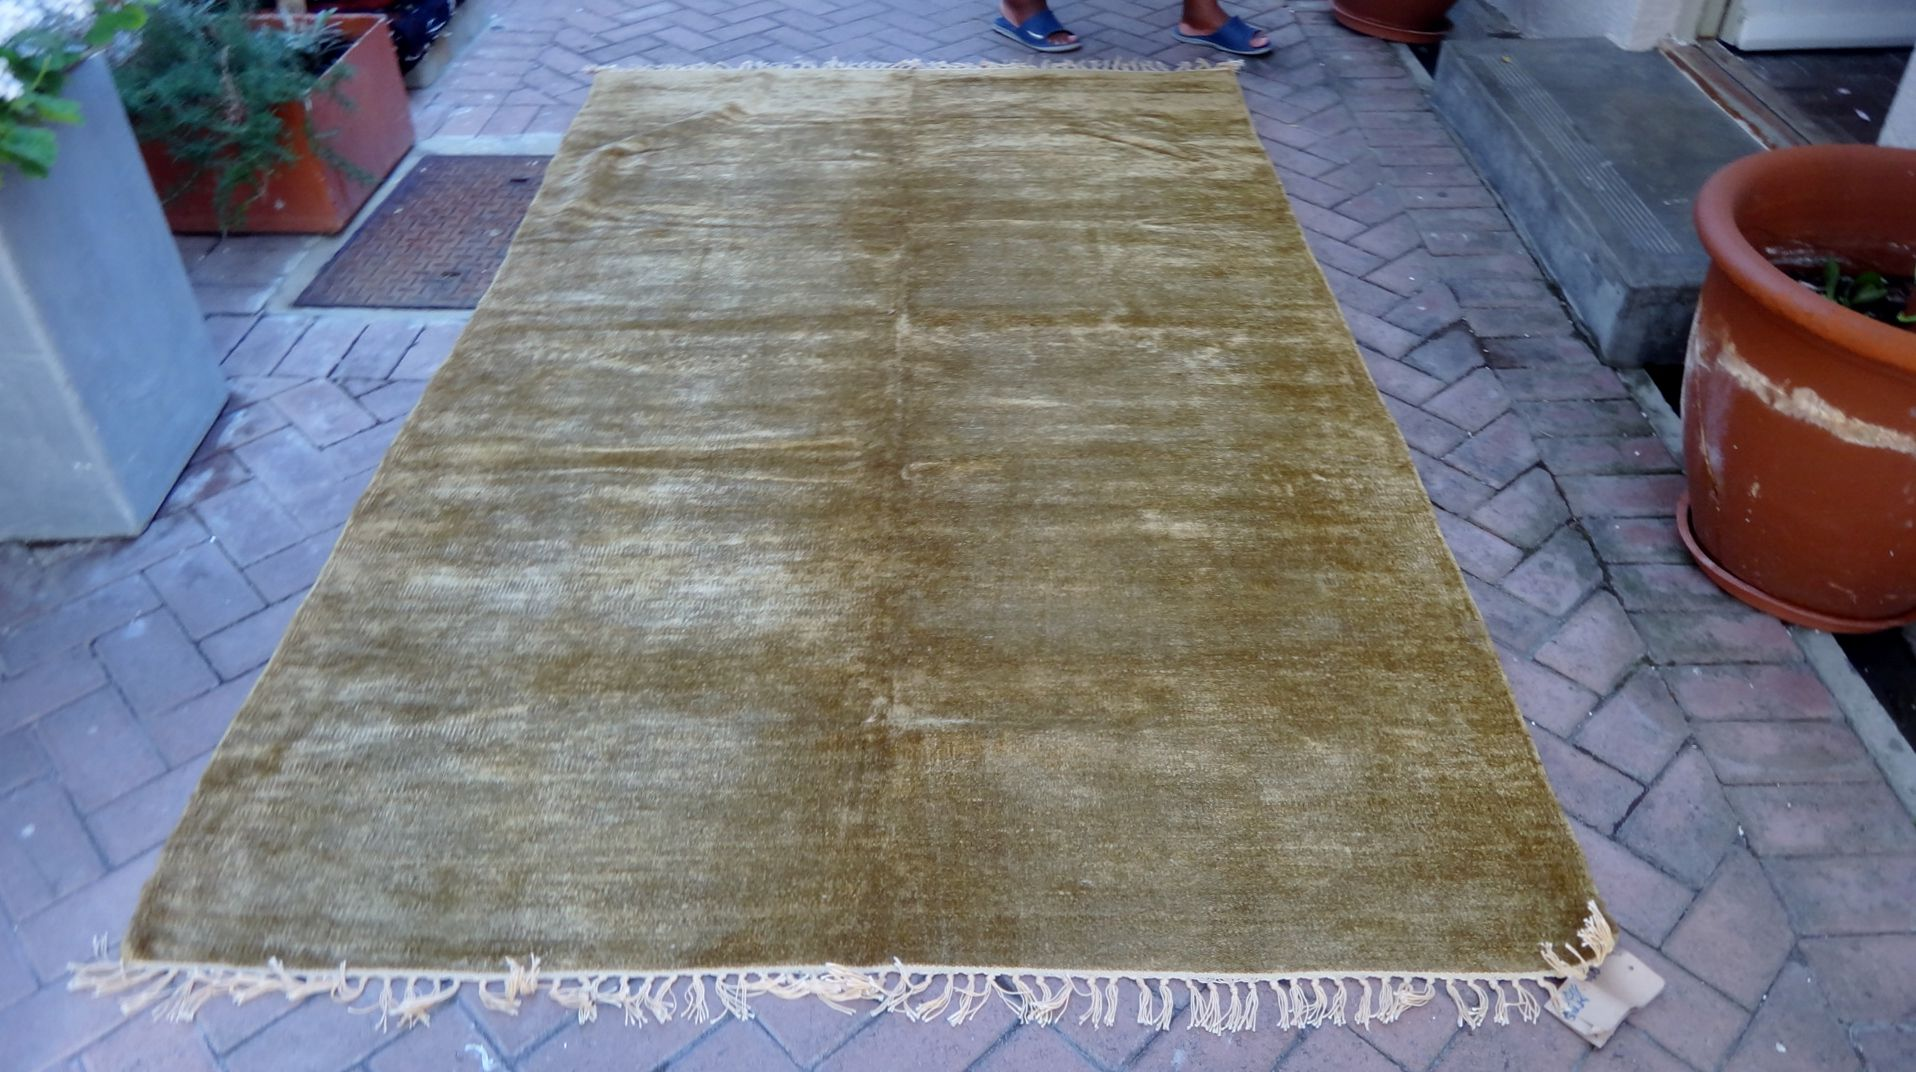 knotted Double Fine Silk and Wool  rug/throw in beautiful deep gold tone  2.74mx1.83m R8700.00 550 pounds www.bokharadecor.com